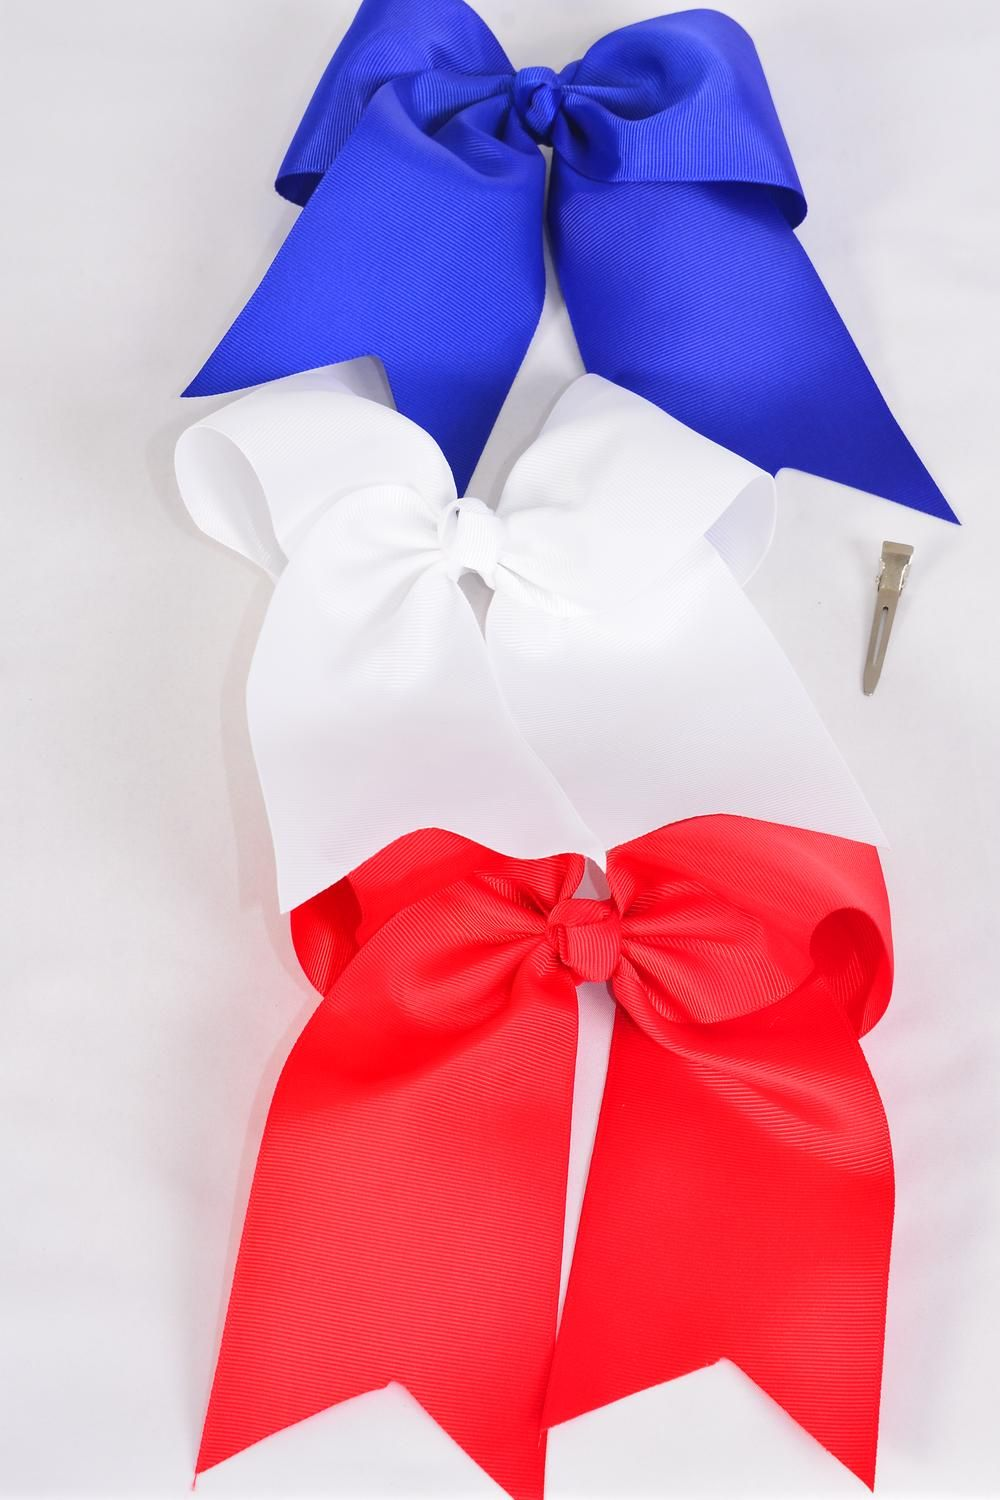 "Hair Bow Extra Jumbo Long Tail Cheer Type Bow Grosgrain Bow-tie Red White Blue Mix/DZ **Red & White & Blue Mix** Alligator Clip,Size-6.5""x 6"" Wide,4 of each Color Asst,Clip Strip & UPC Code"